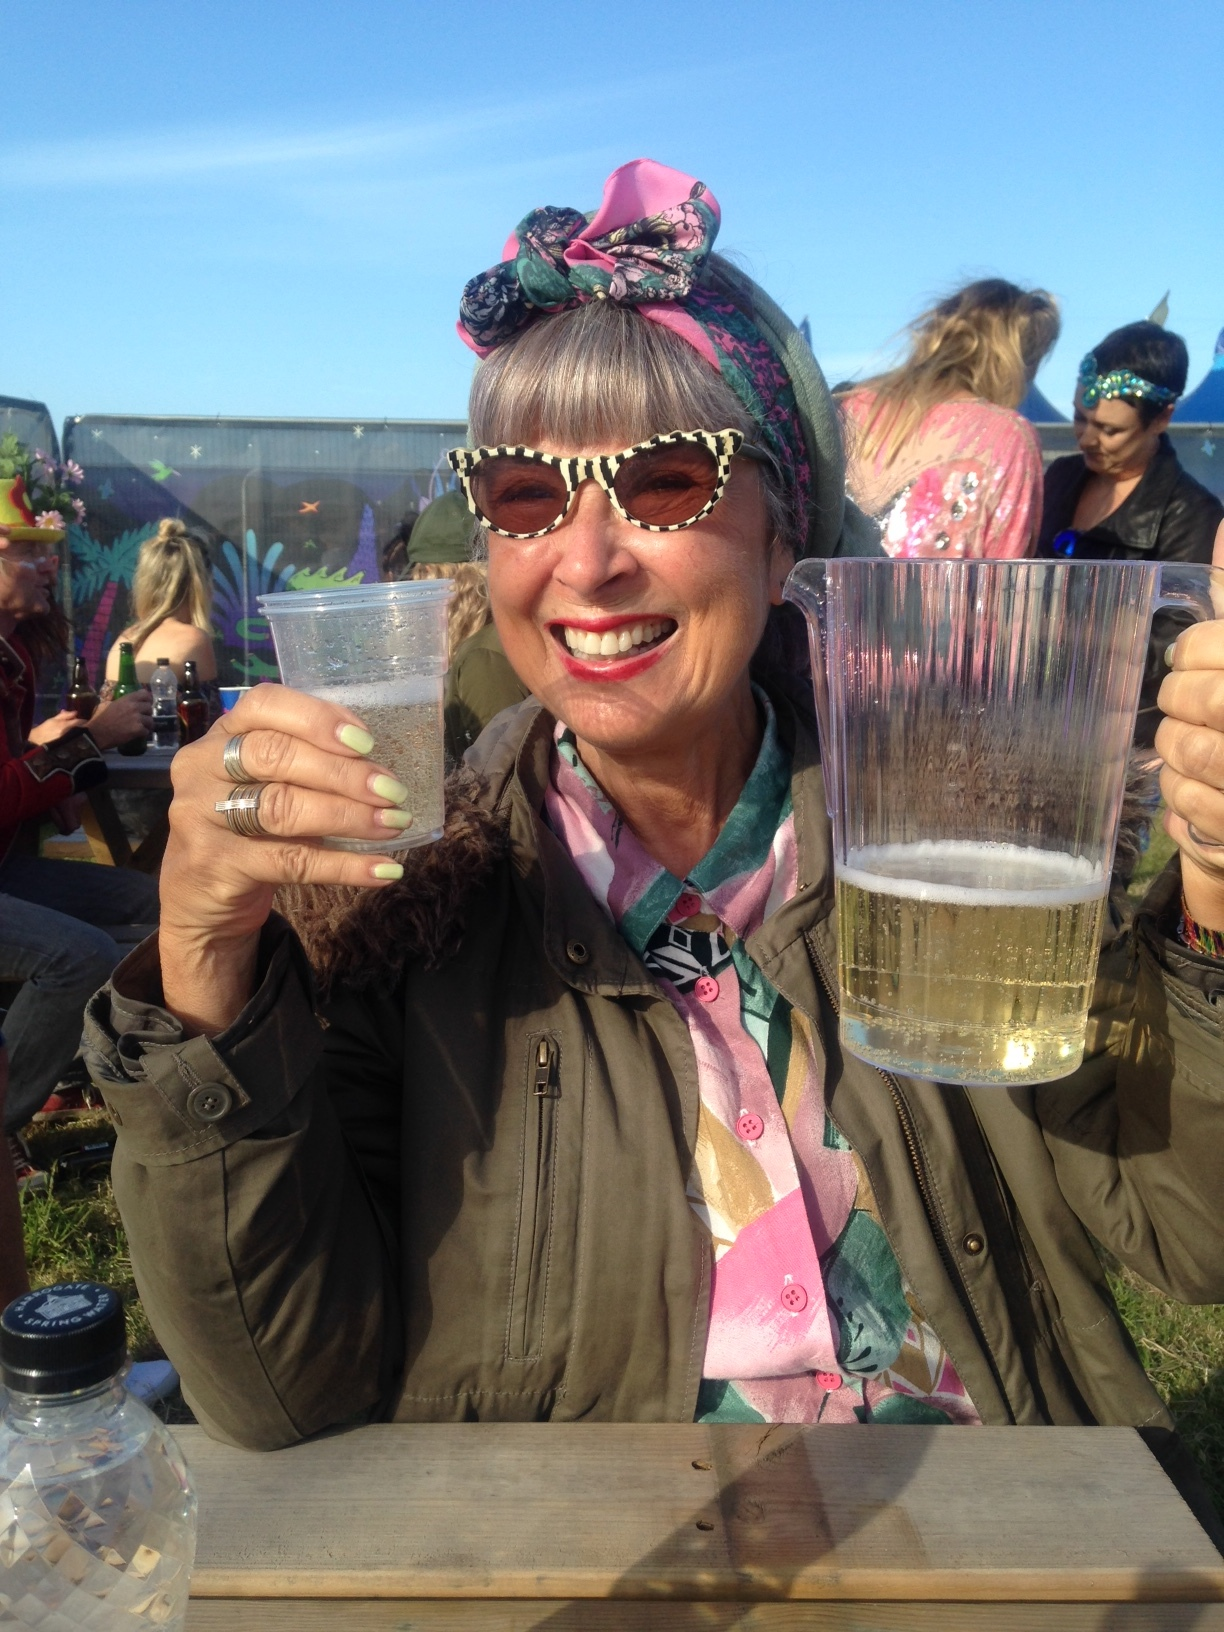 A jug of prosecco always helps you survive a festival!